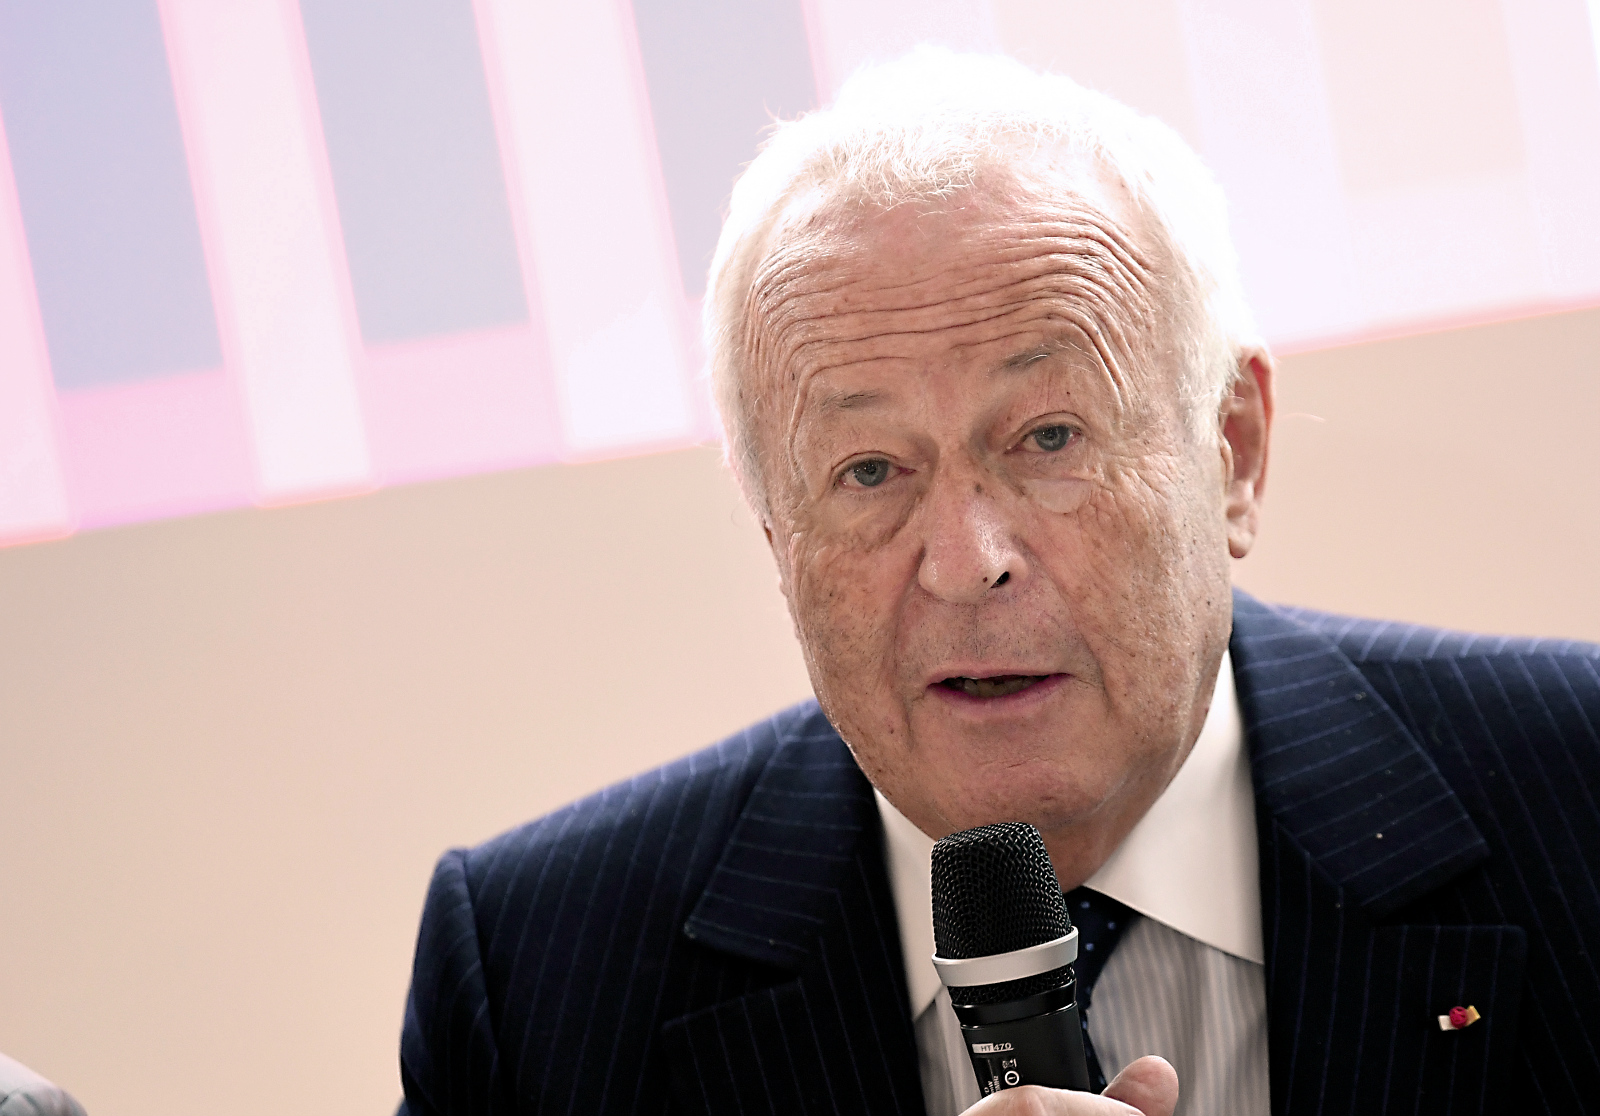 President of Fondation Merieux, Alain Merieux, attending the 50th anniversary of the Fondation Merieux, which is dedicated to fighting infectious diseases, September 14, 2017, Veyrier du Lac, France. [Photo: AFP]